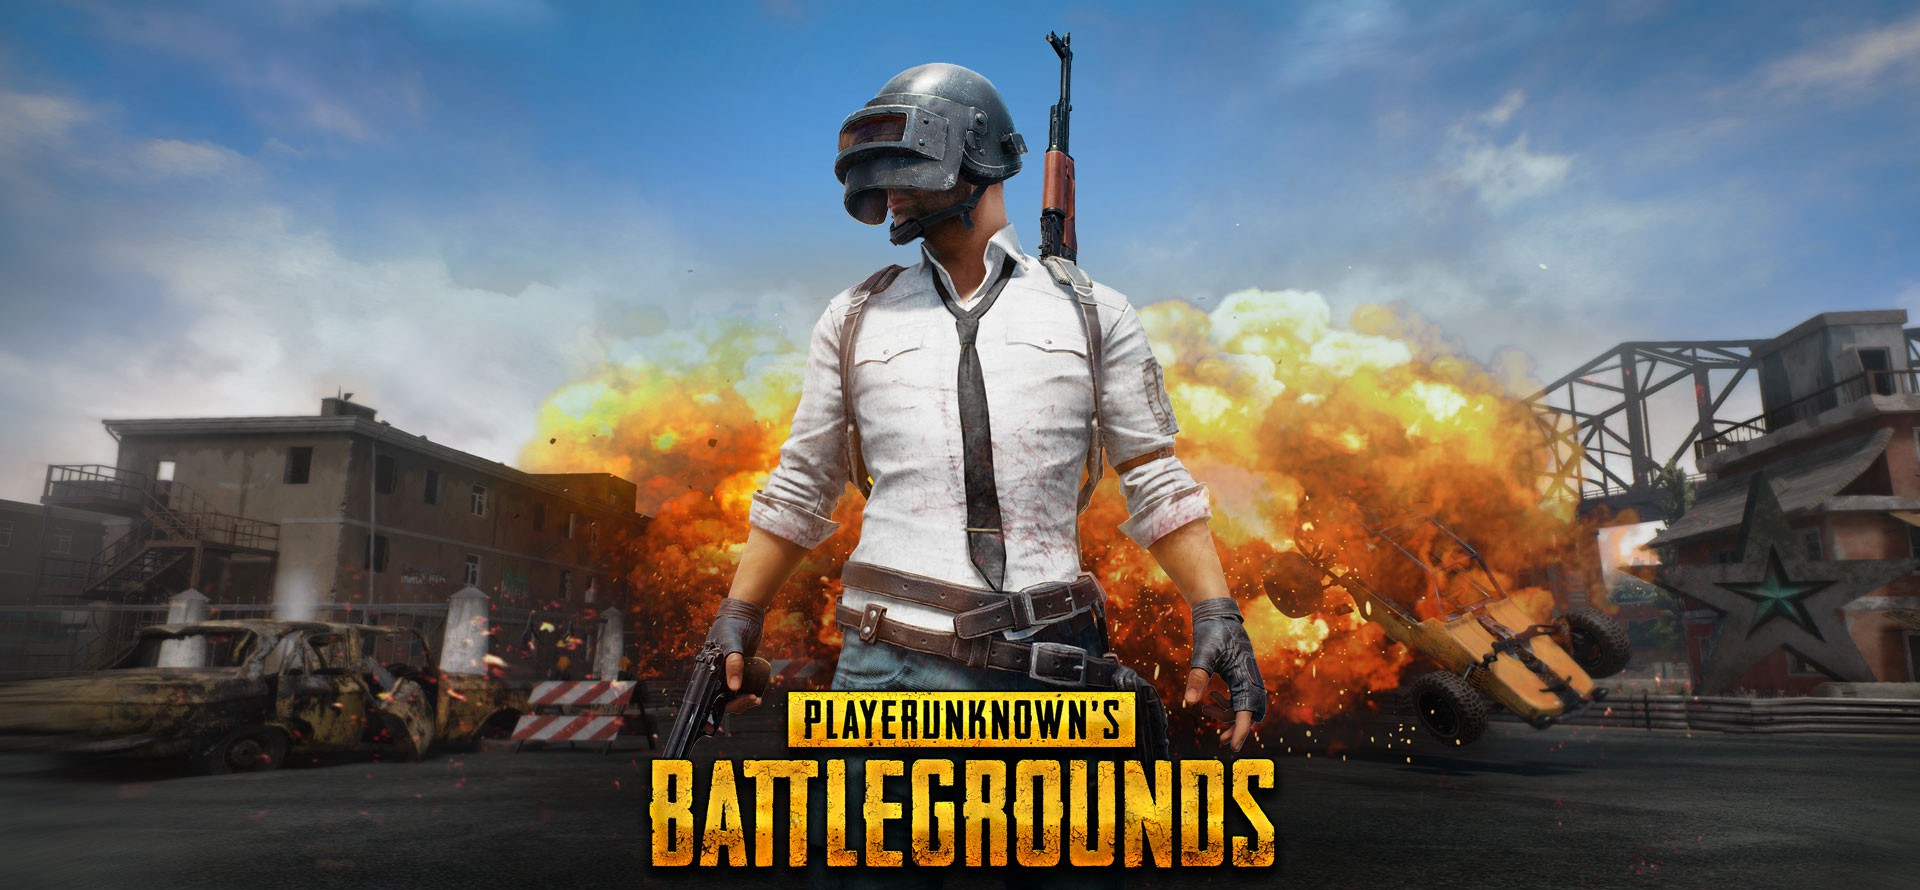 1920x1080 Pubg Android Game 4k Laptop Full Hd 1080p Hd 4k: What You Can Learn From The Team Behind PUBG